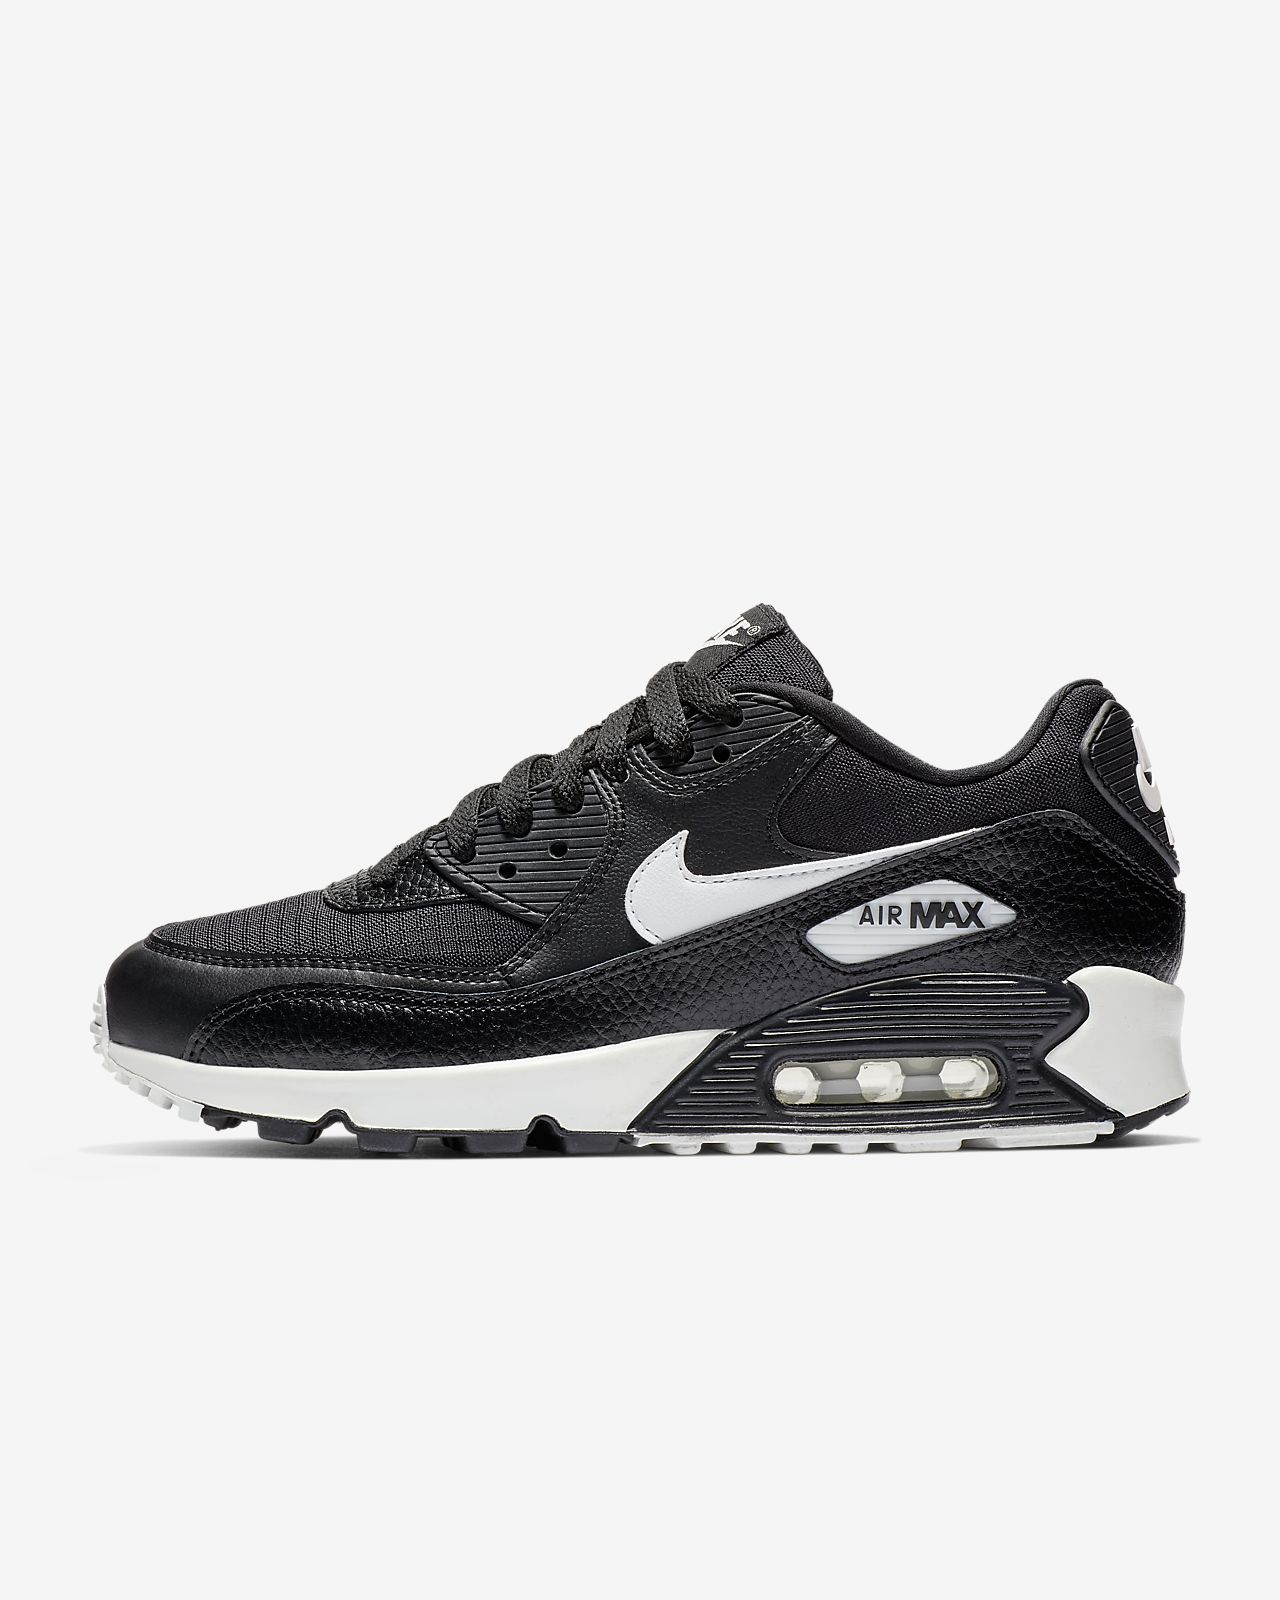 12c5972c169 Nike Air Max 90 Women s Shoe. Nike.com AU